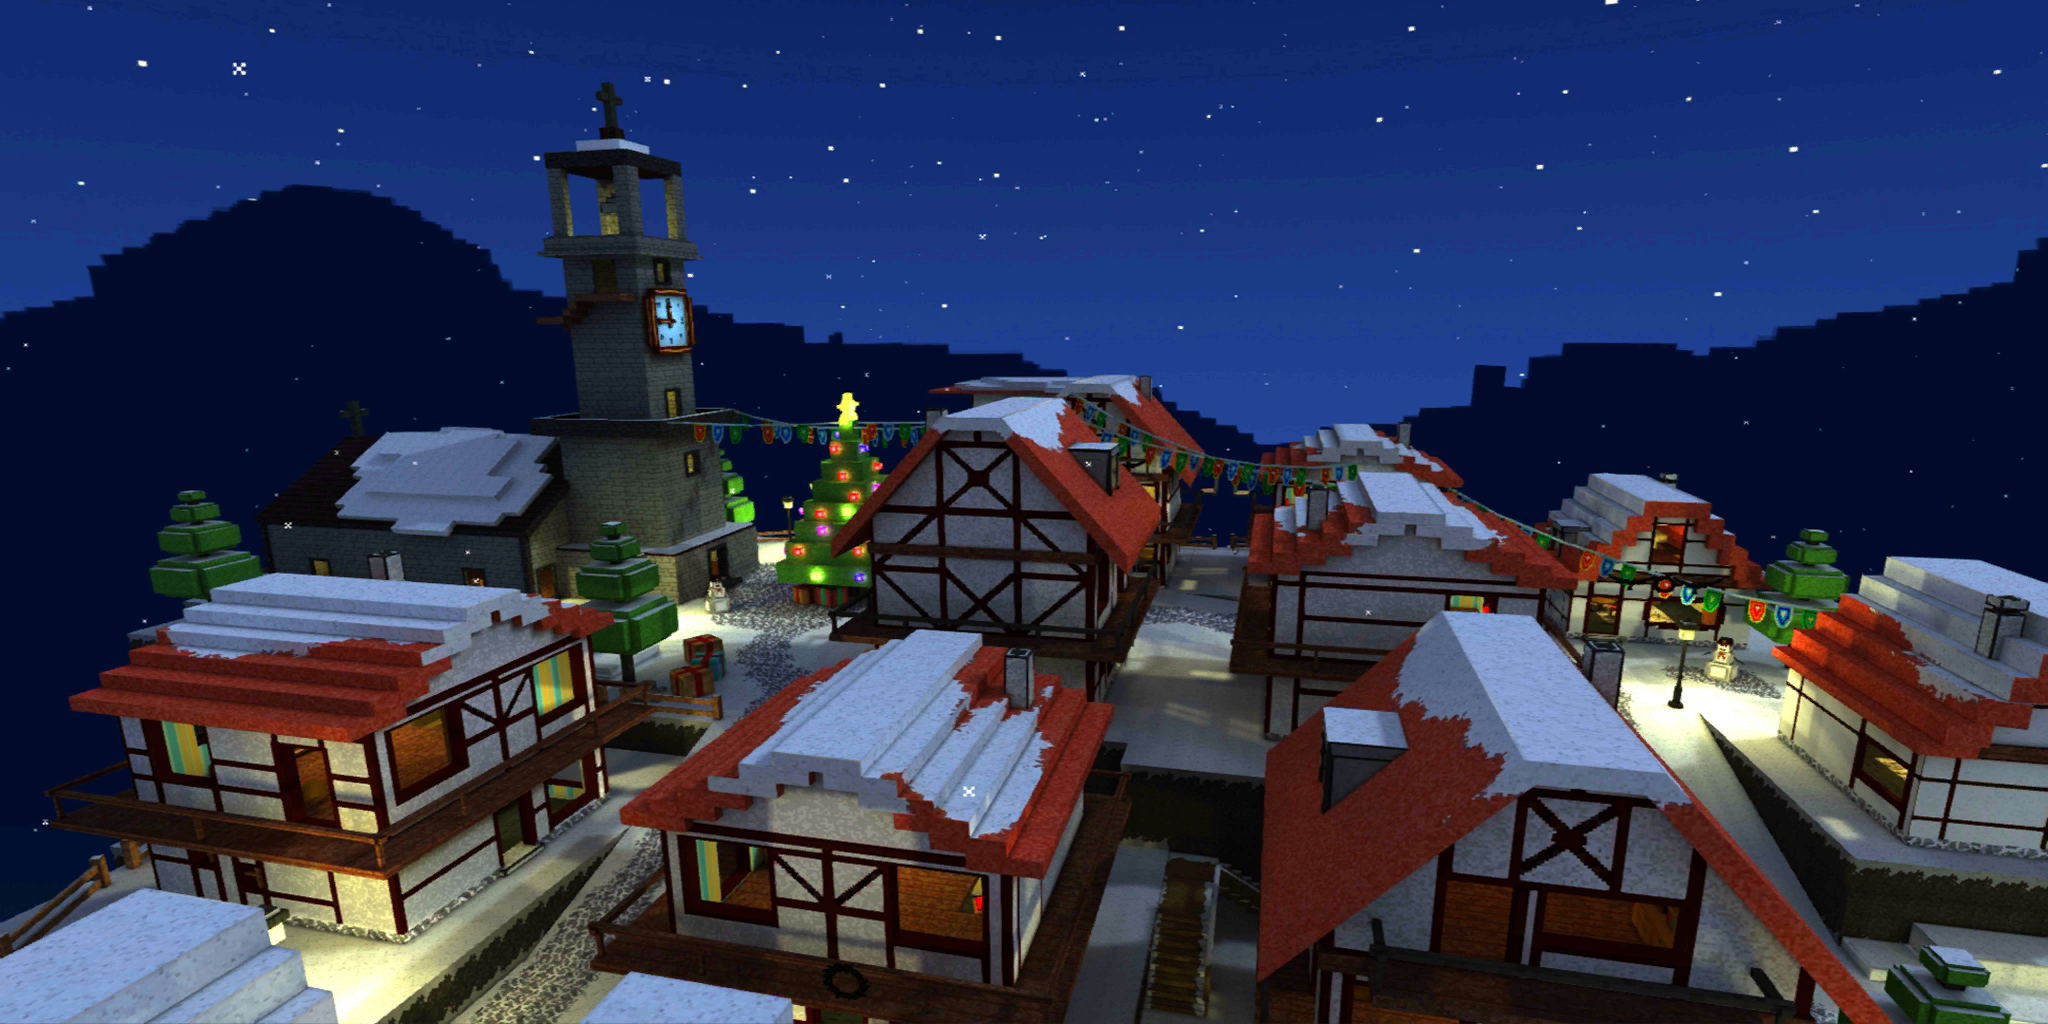 Night Christmas Town